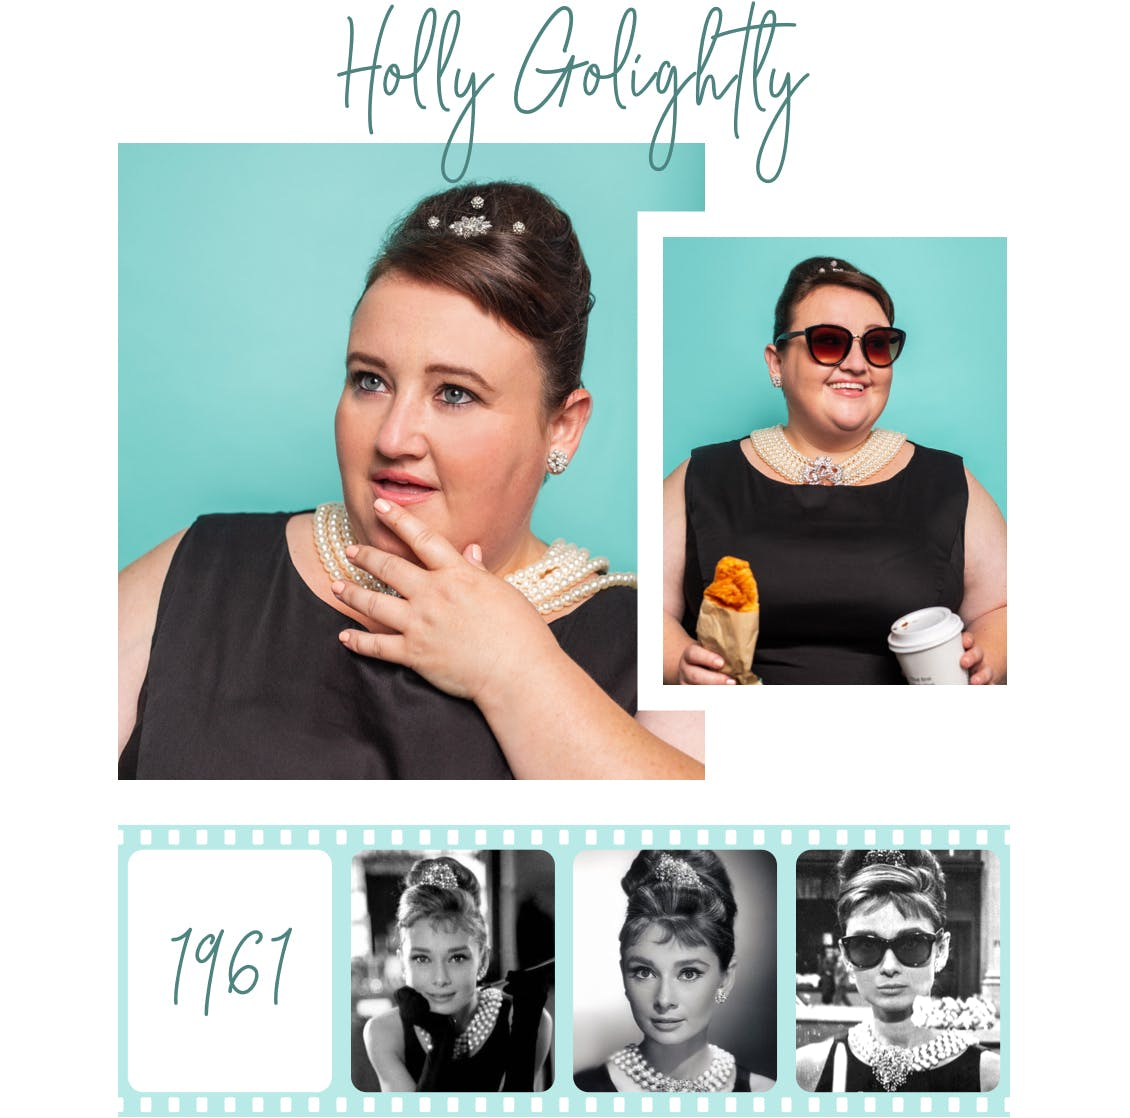 Image of esalon employee as holly golightly from breakfast at tiffany's with images of orignal look from 1961 below